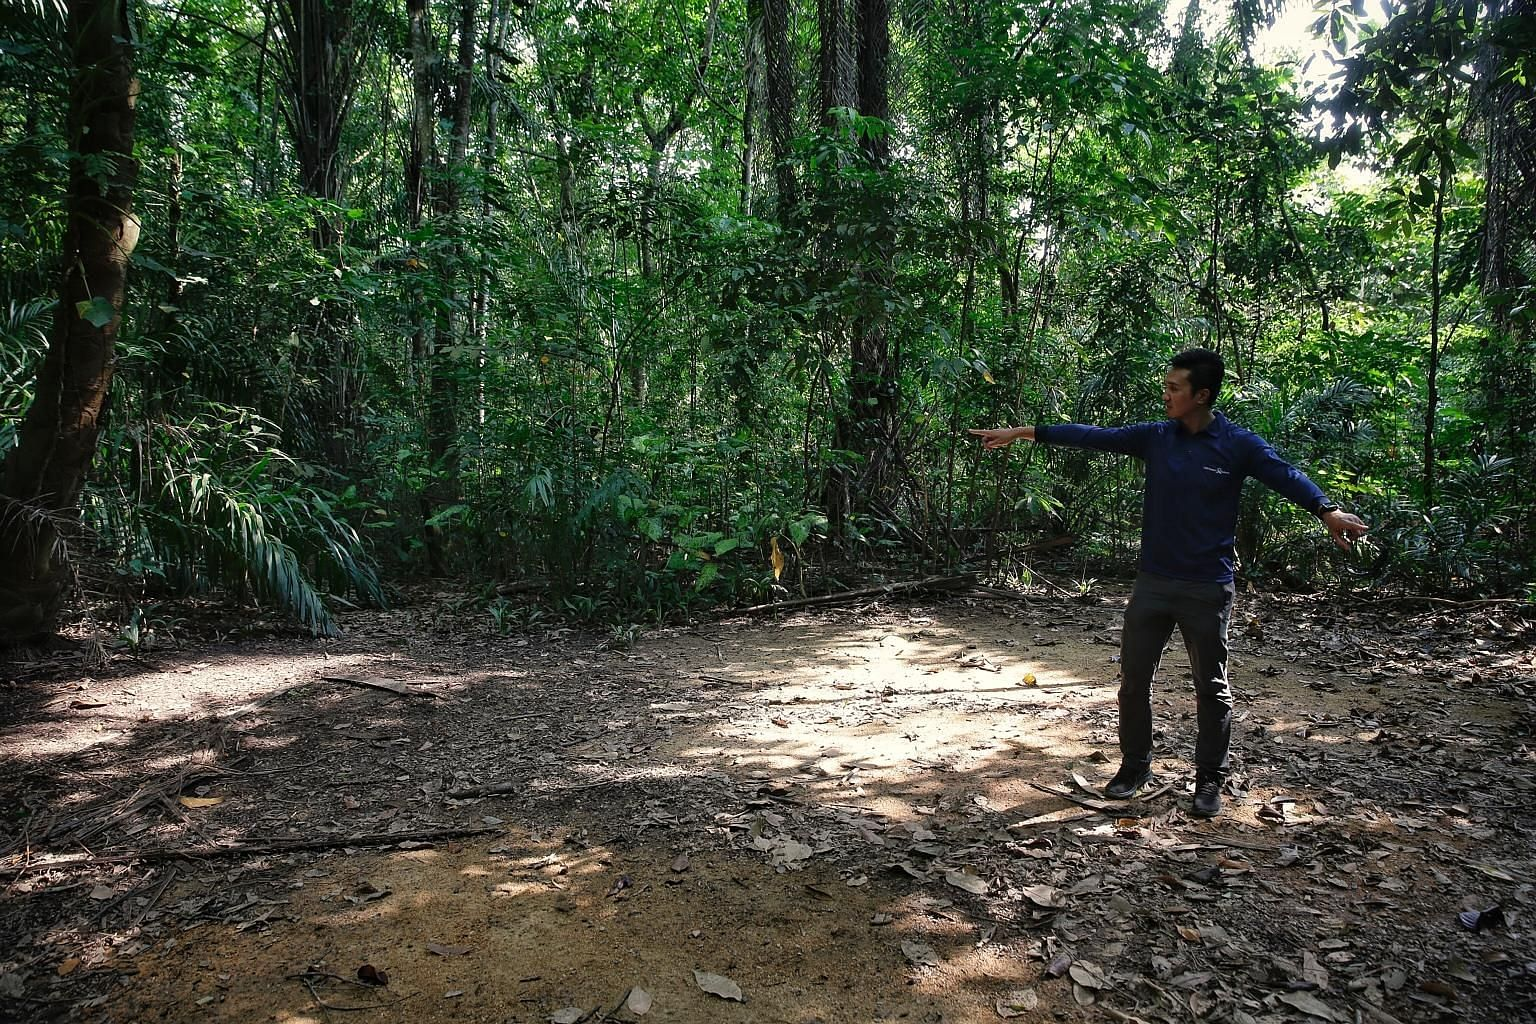 A Land Transport Authority engineer showing the approximate location of a borehole during a site visit to the Central Catchment Nature Reserve earlier this month, after completion of investigation works for the Cross Island Line train tunnel.